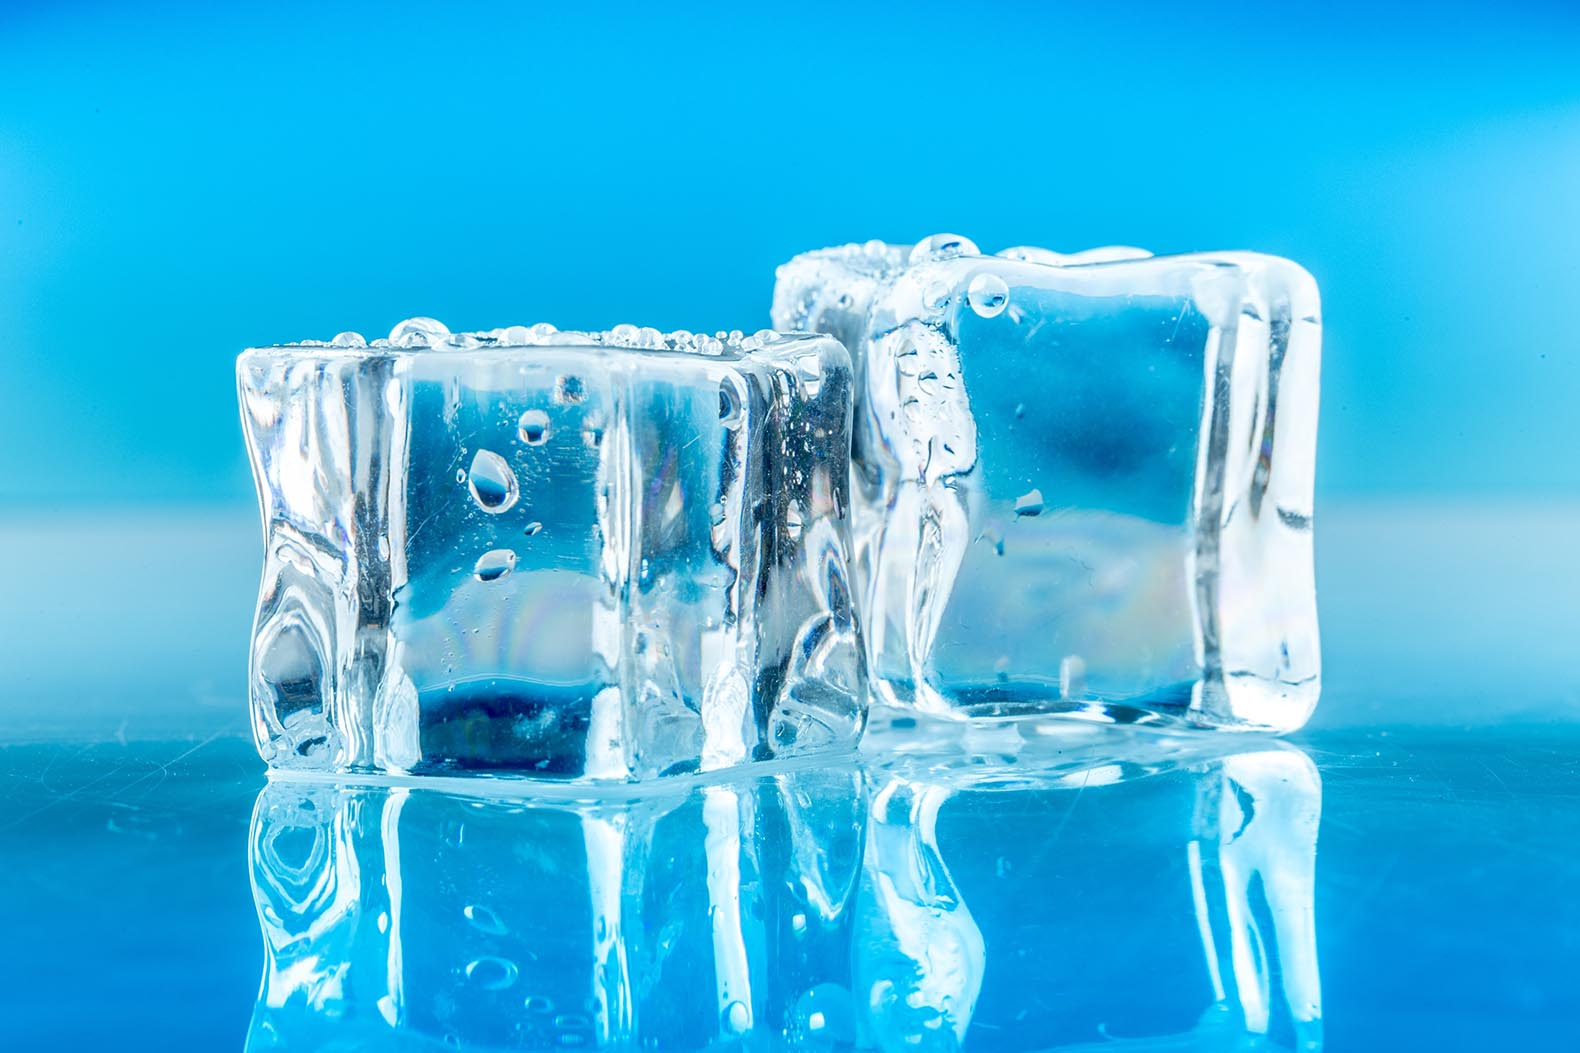 Amazing Ice Pictures & Backgrounds